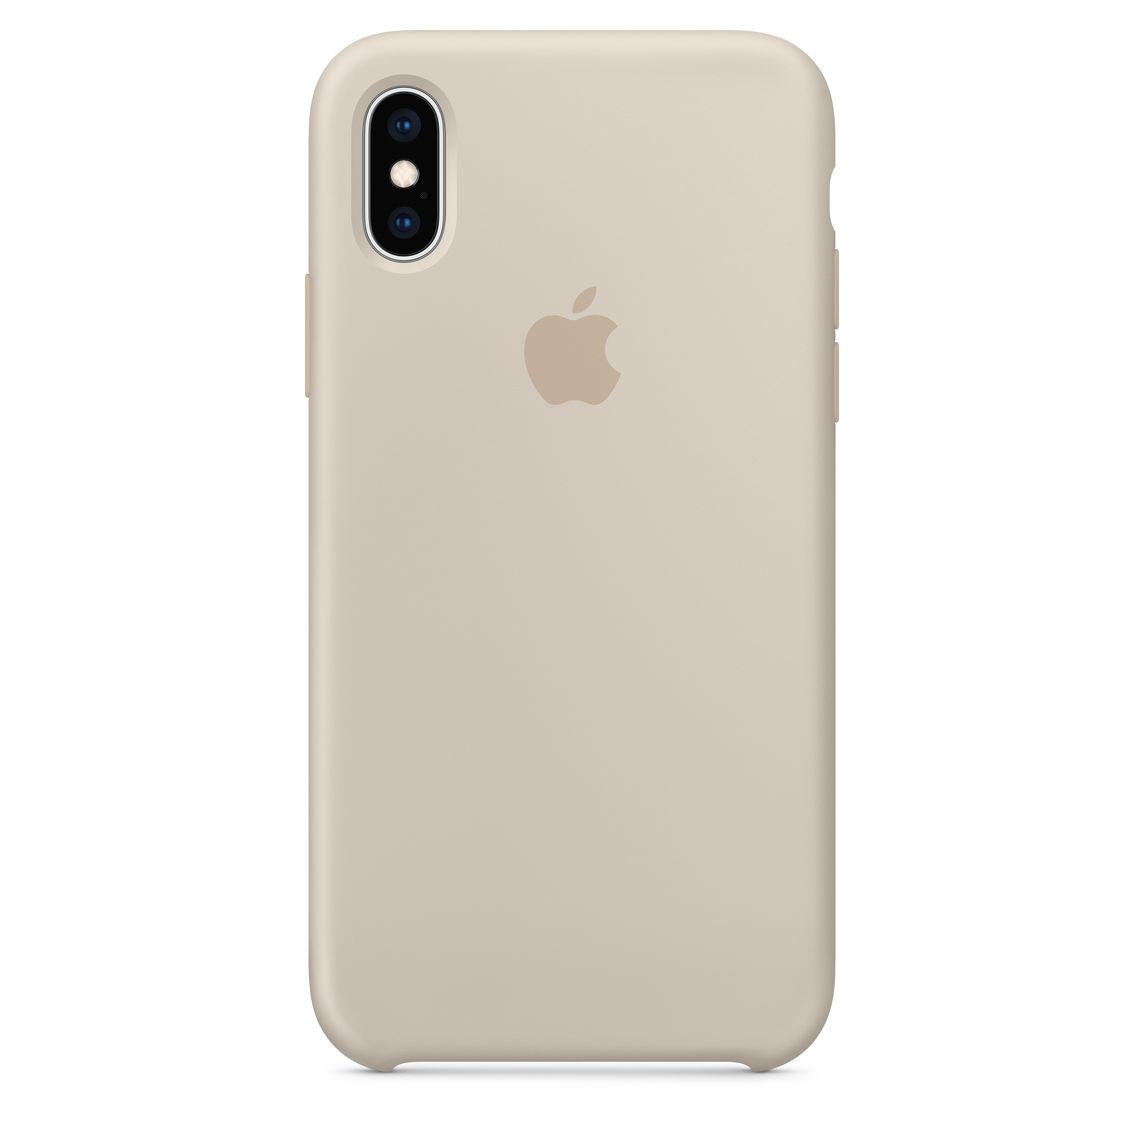 buy online 72347 86f3f iPhone XS Silicone Case - Stone